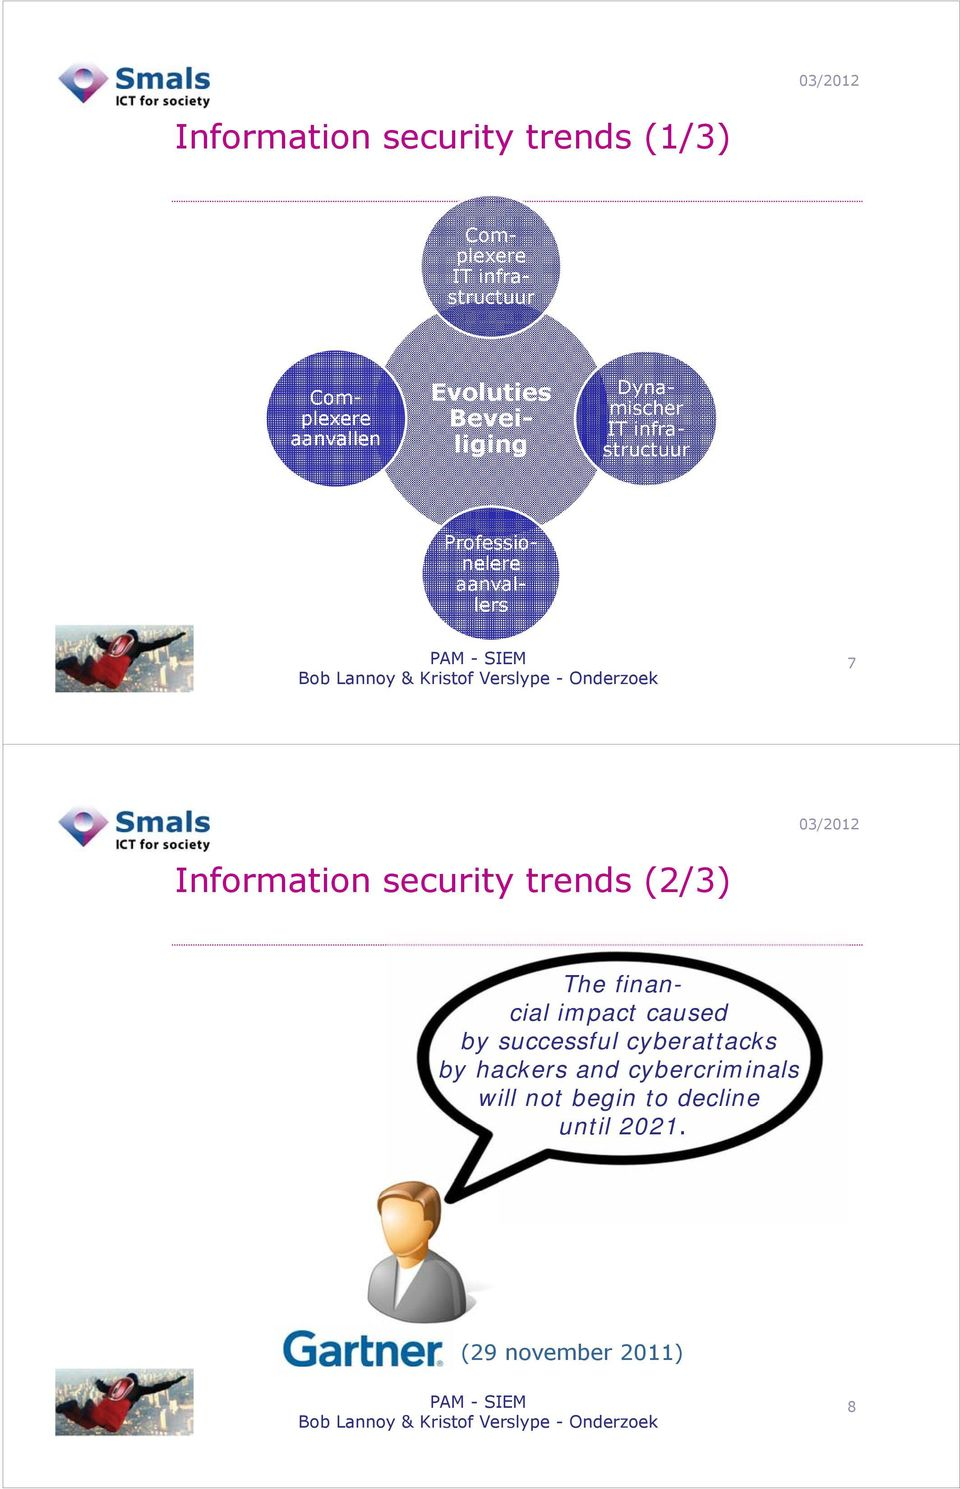 Information security trends (2/3) The financial impact caused by successful